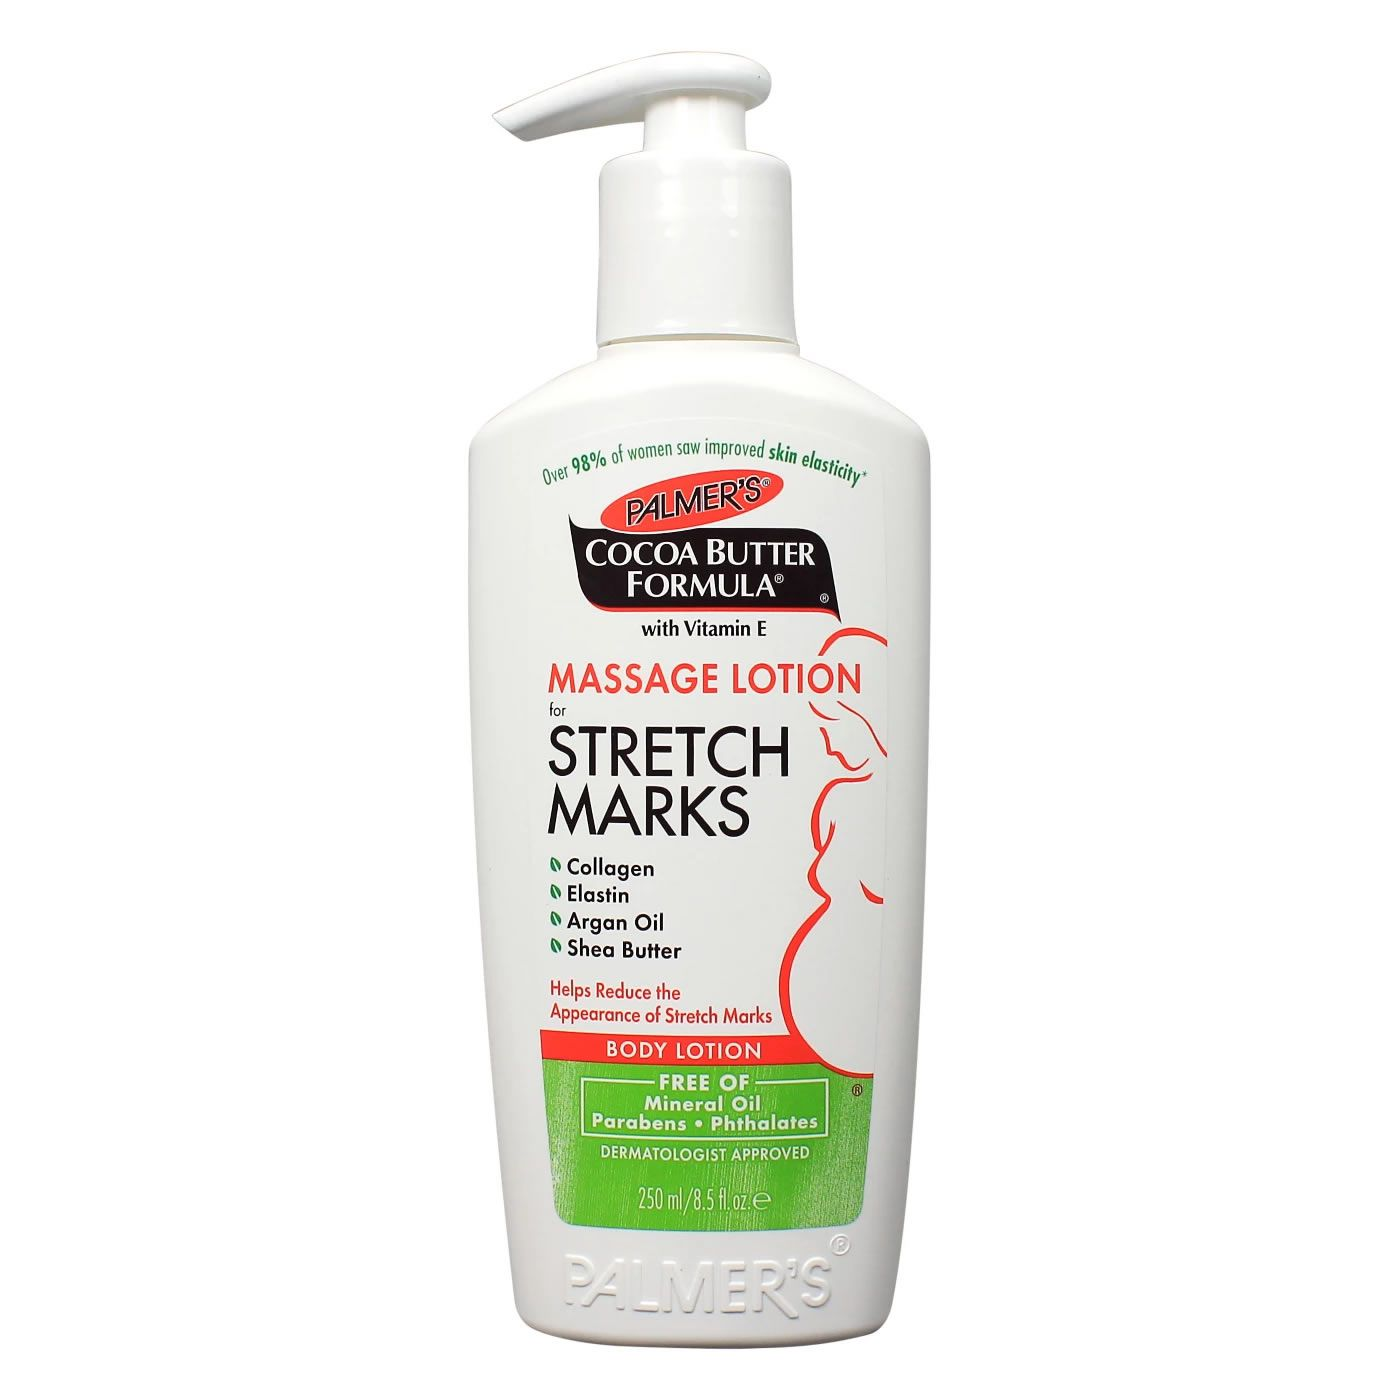 Palmers Cocoa Butter Massage Lotion Stretch Marks - 250ml